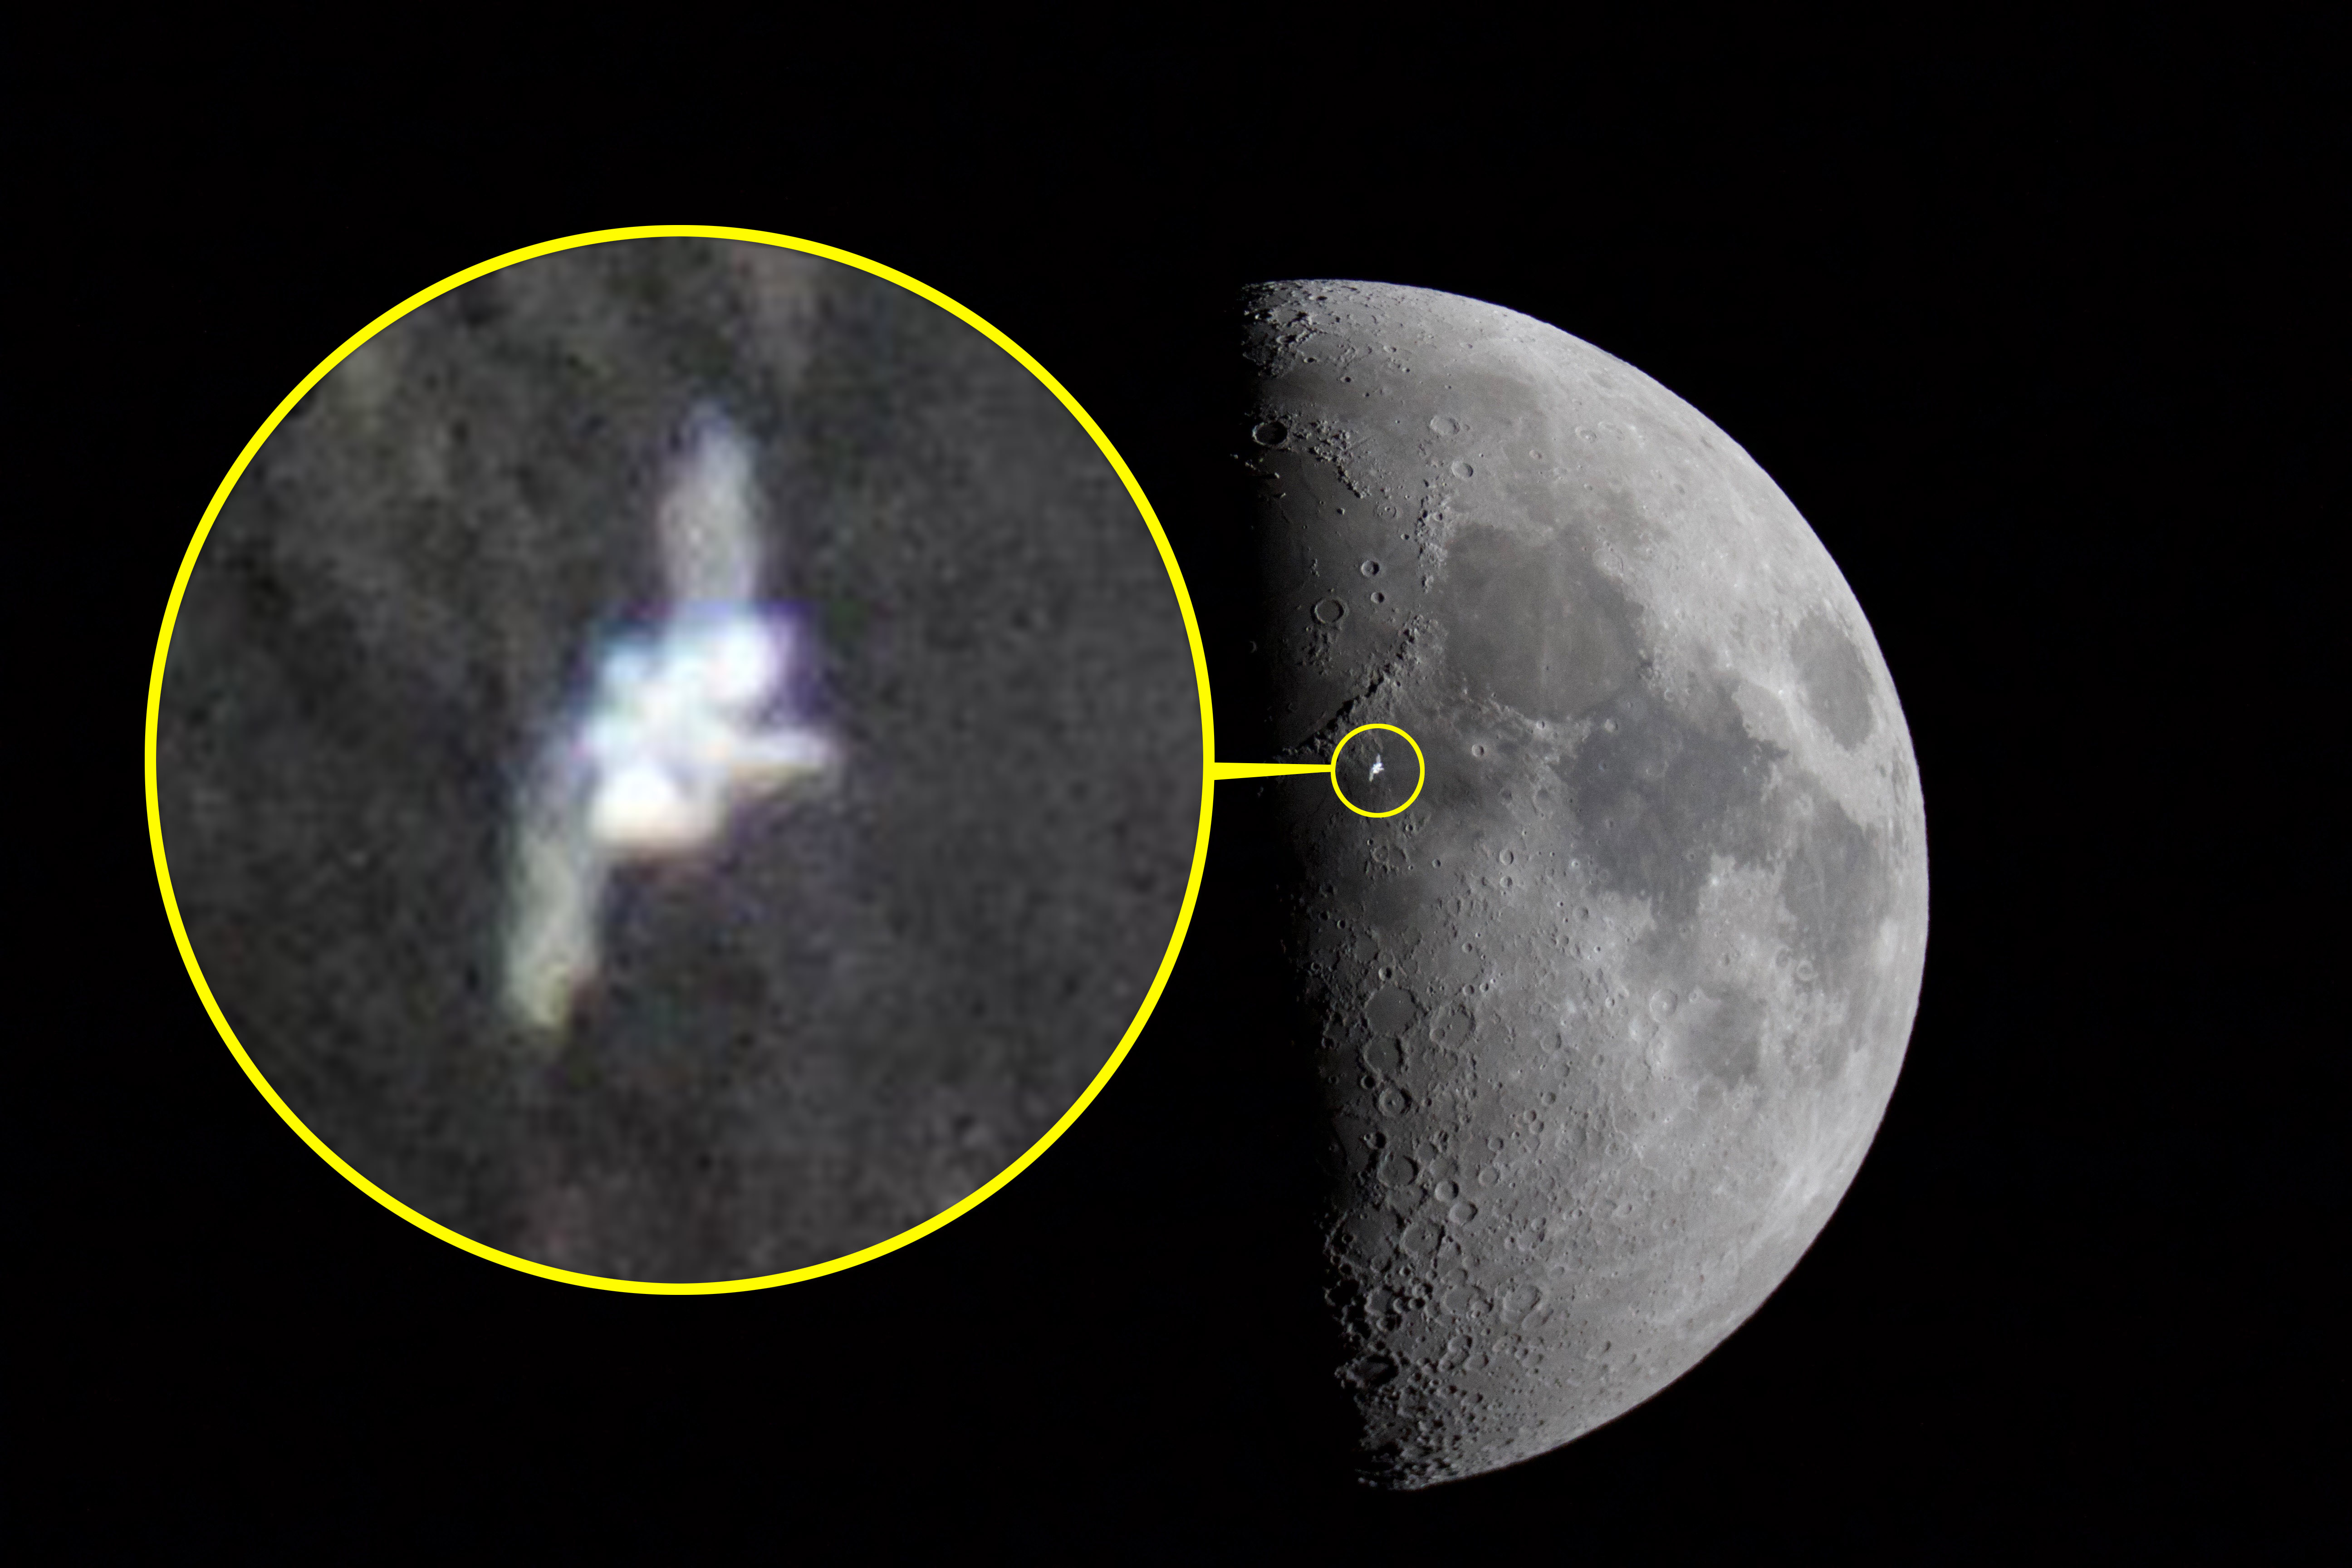 moon space station pictures - photo #35